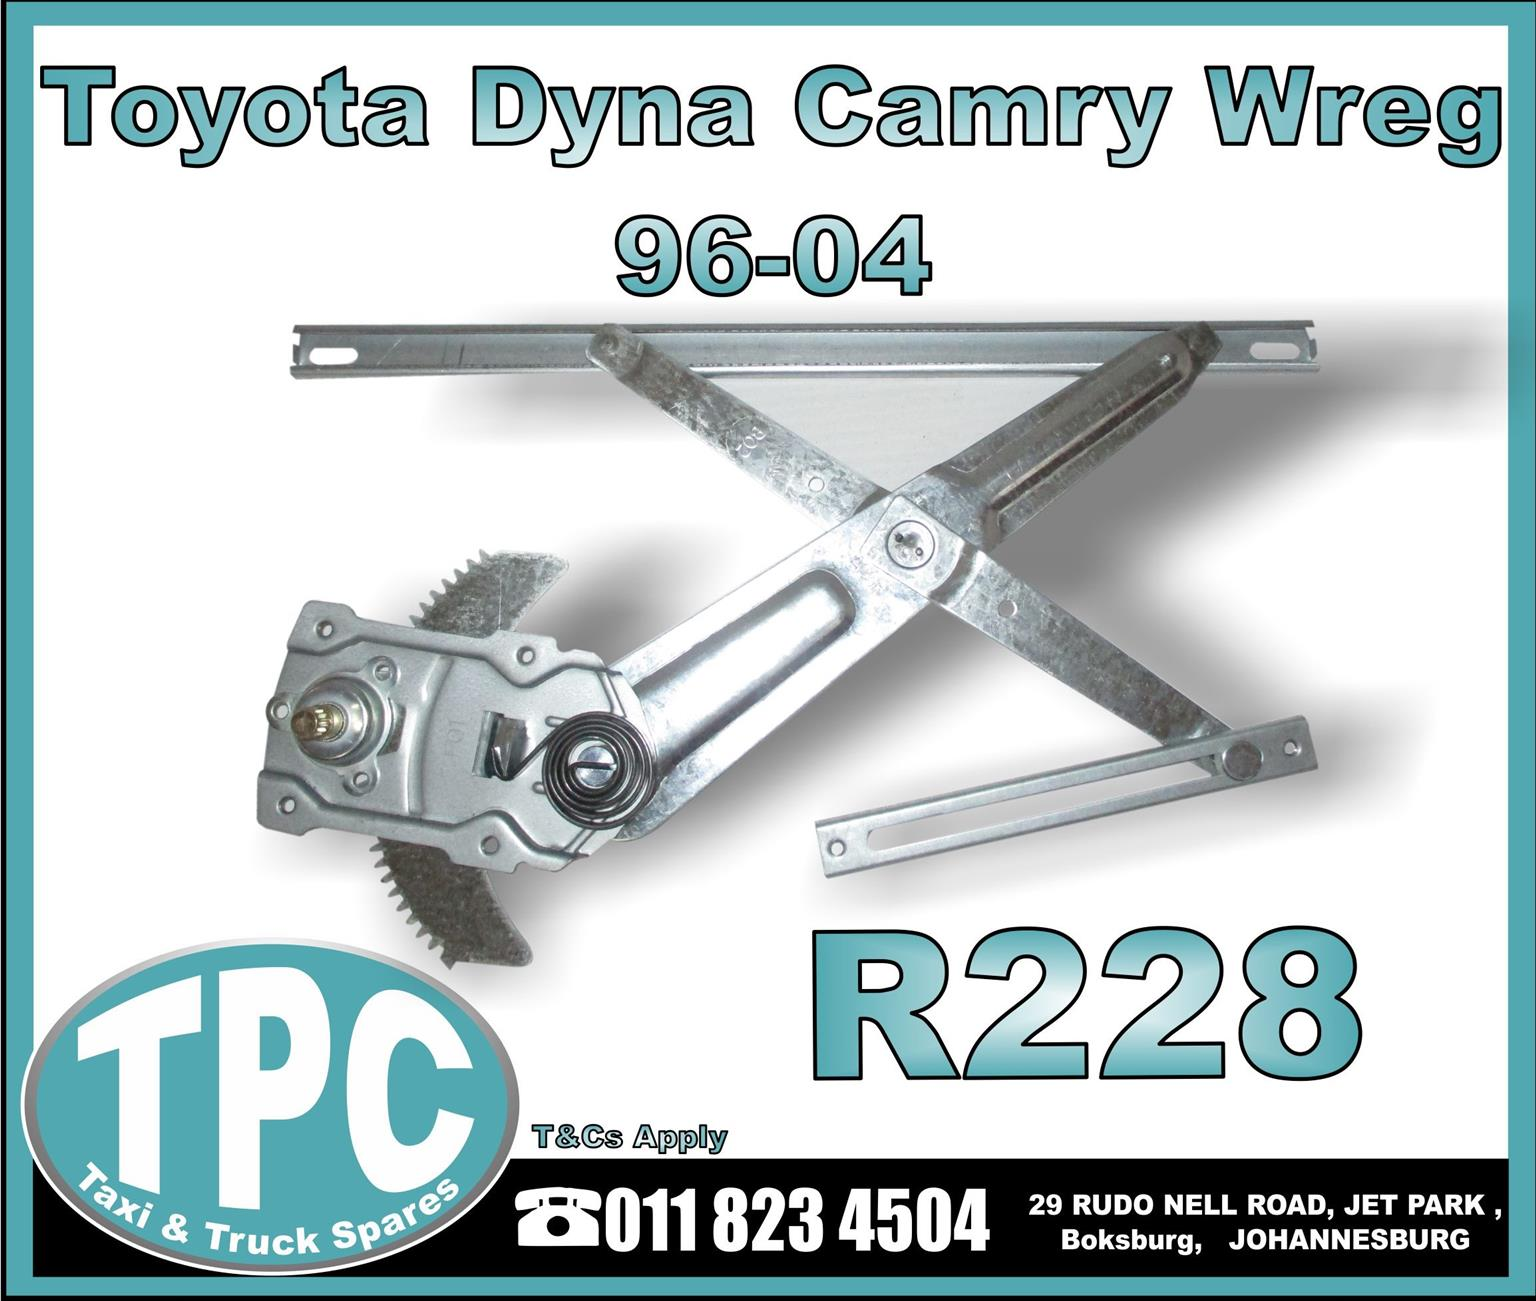 Toyota Dyna Camry Wreg - 96-04 - New Replacement Truck Body Parts- TPC.